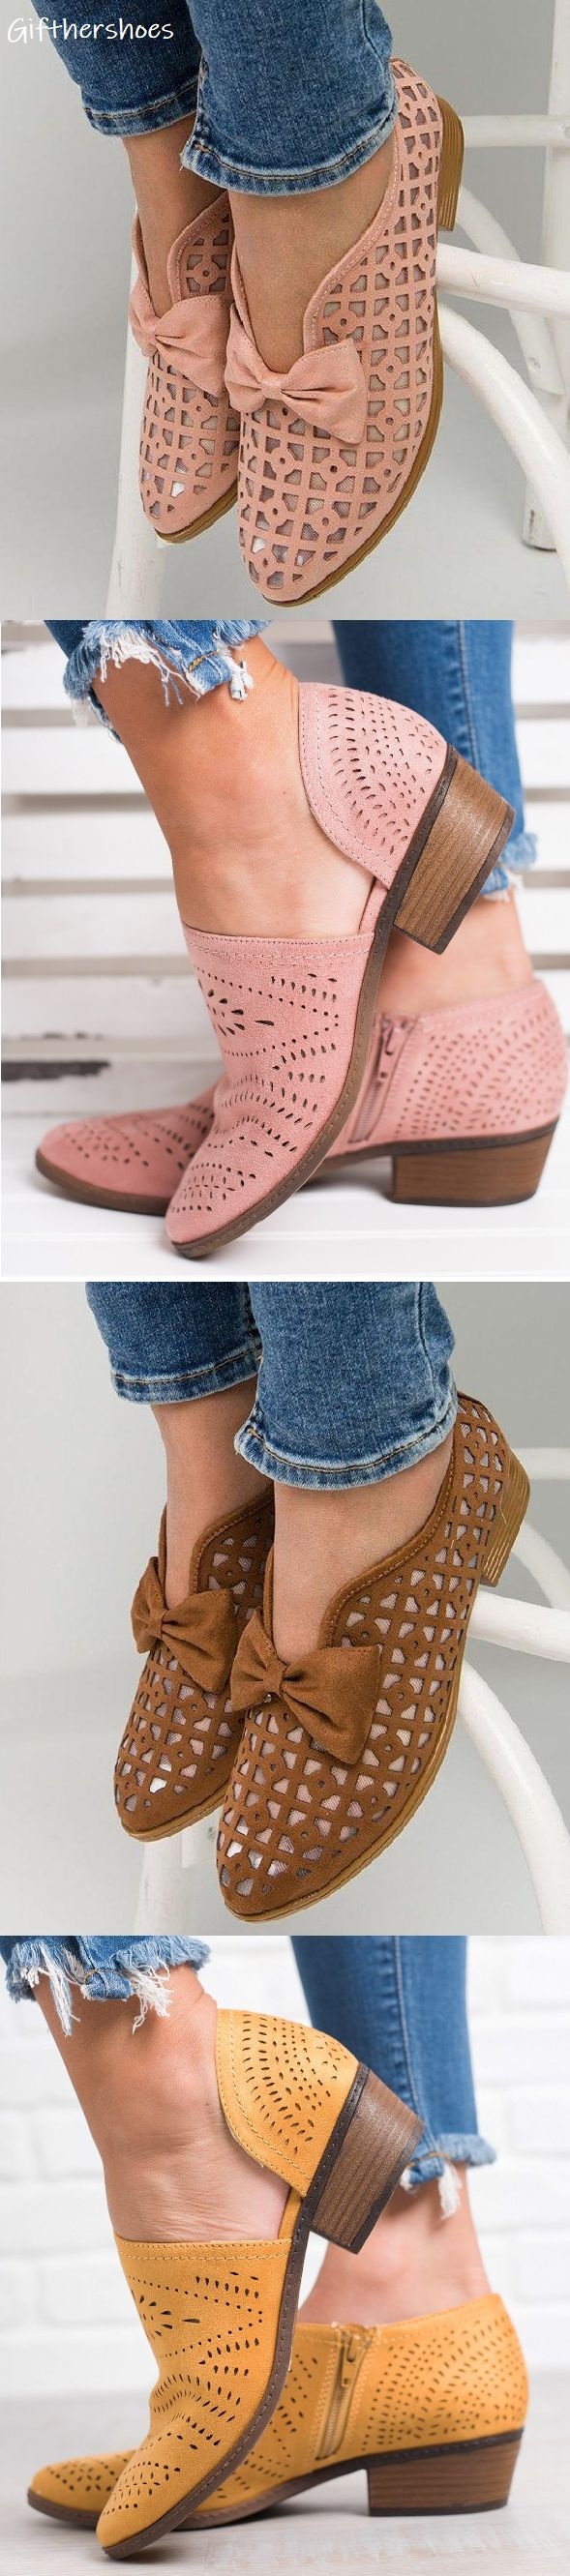 SHOP NOW>>75% OFF Hot Hollow Out Sandals Shoes Picks for Your Daily Outfits.Must Have Pair!